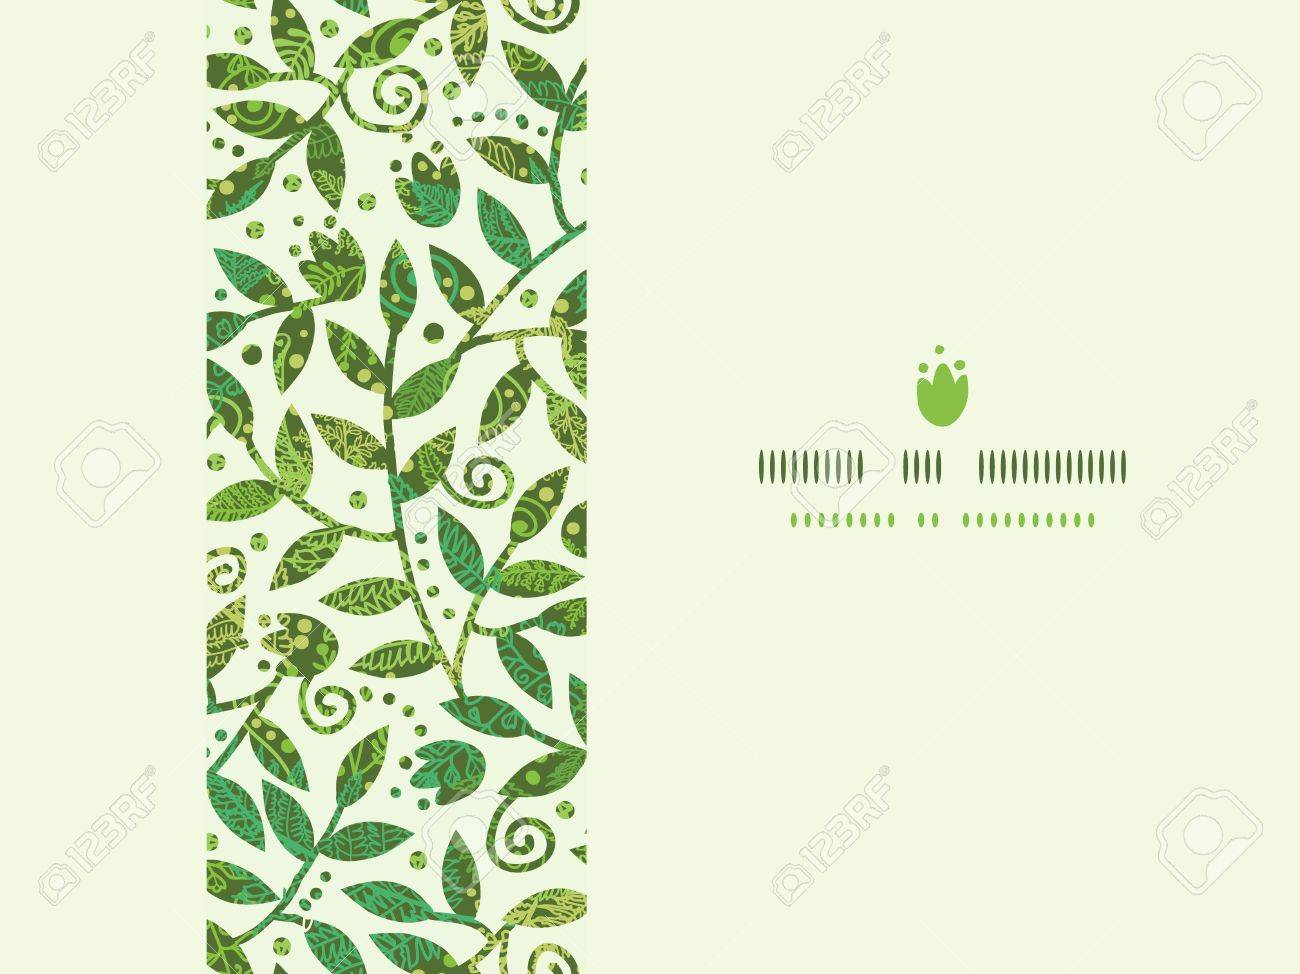 Textured Colorful Branches Horizontal Seamless Pattern Background Stock Vector - 18937835